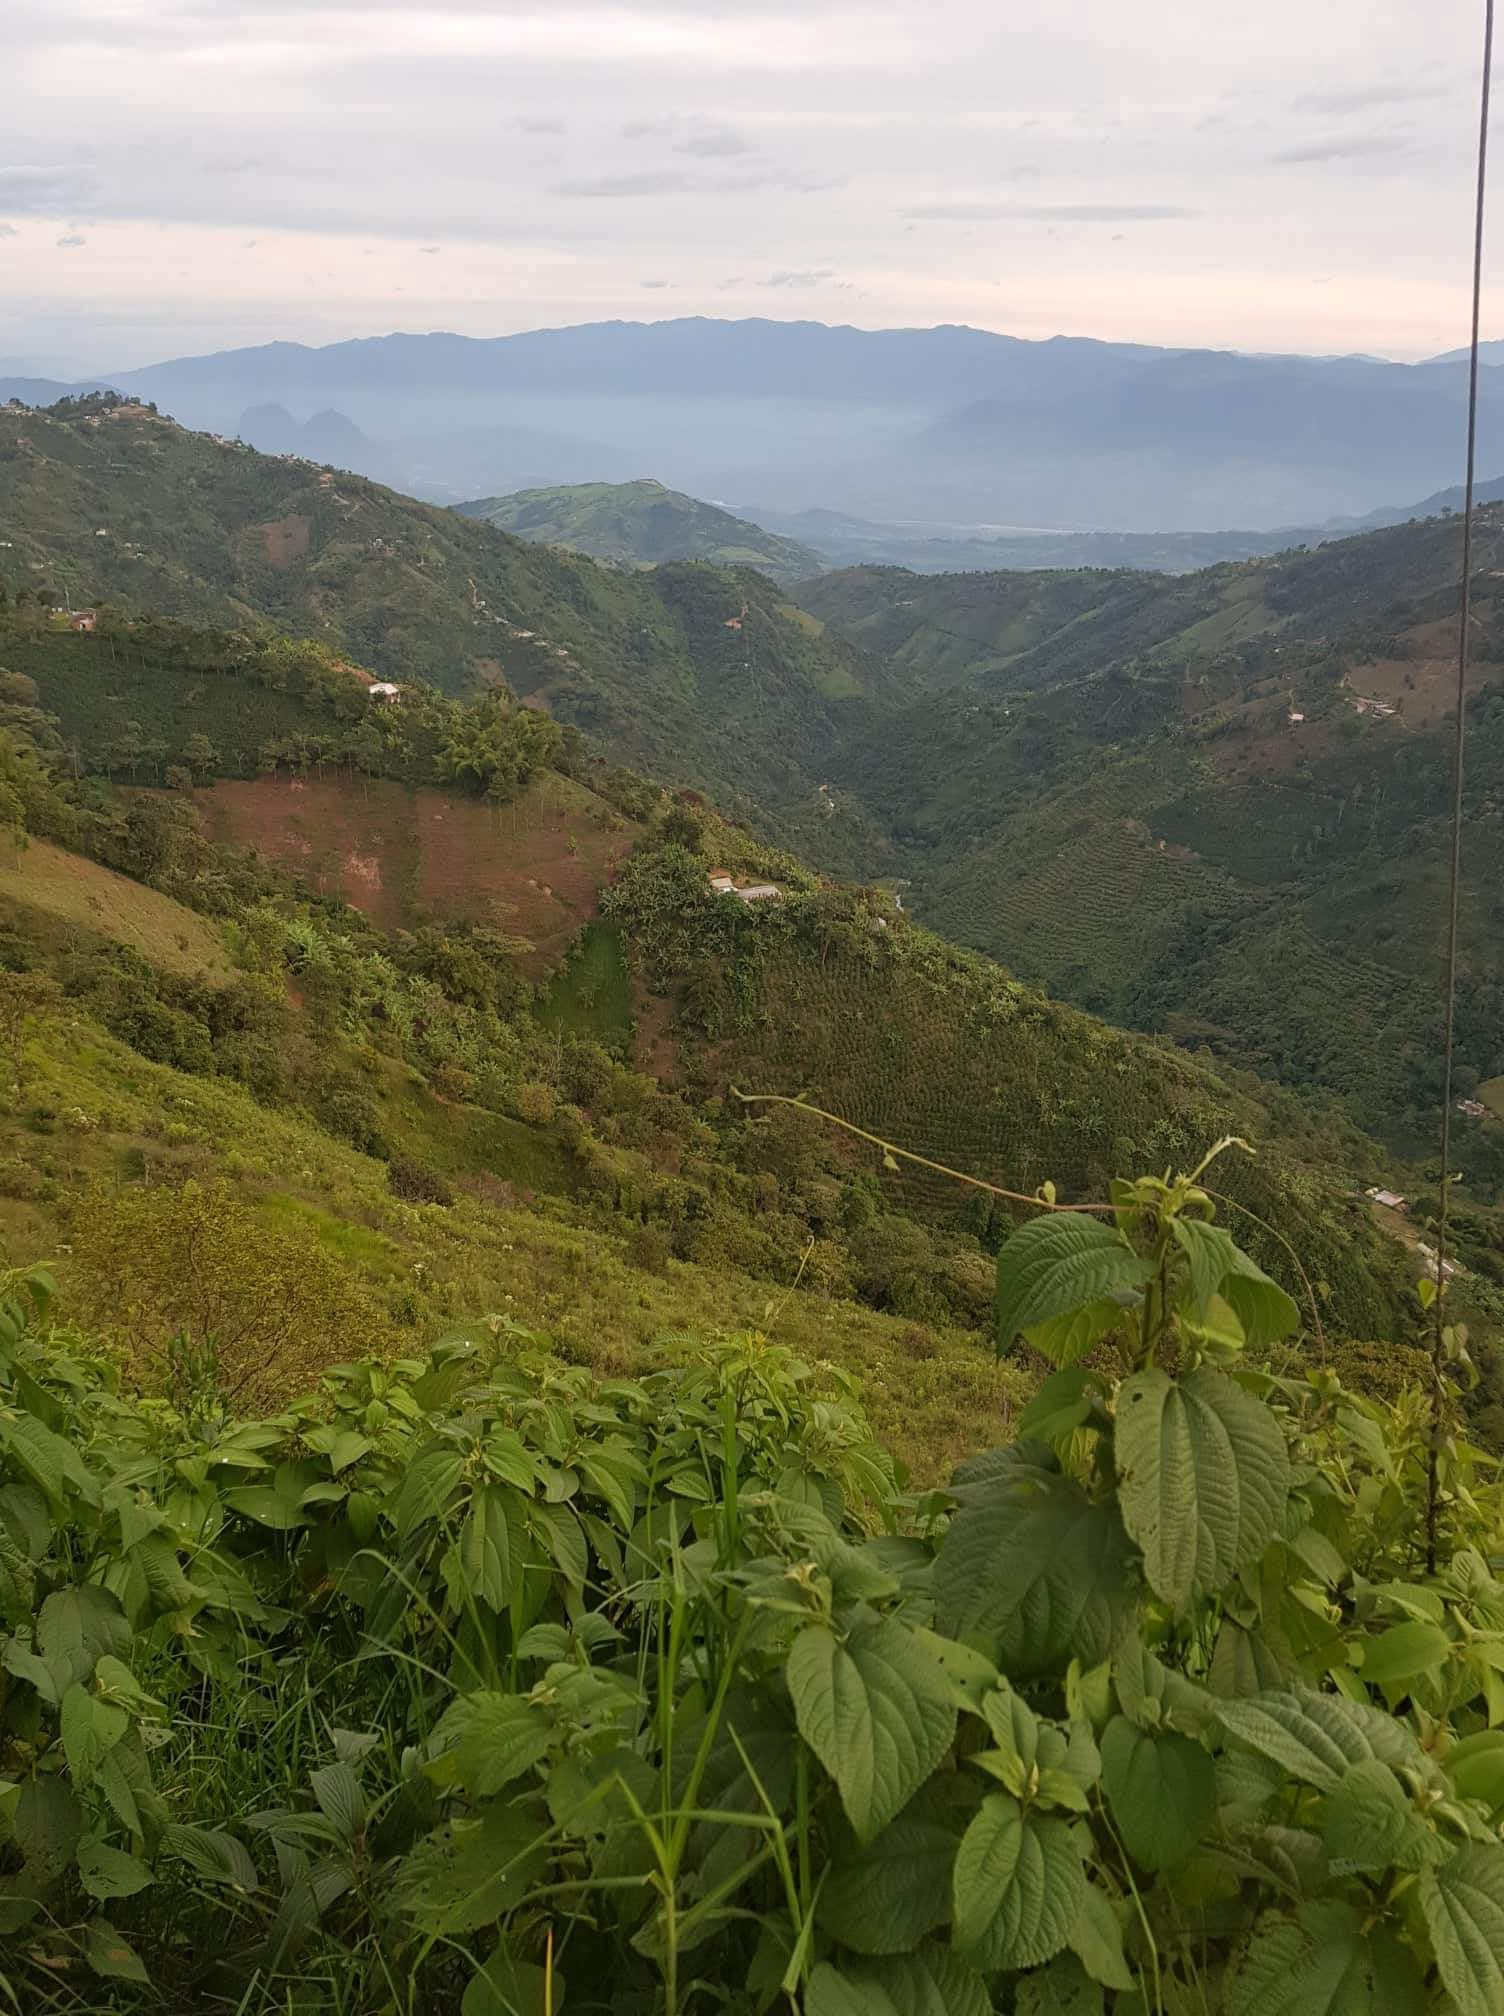 The jungle on the foothills of The Andes in Colombia